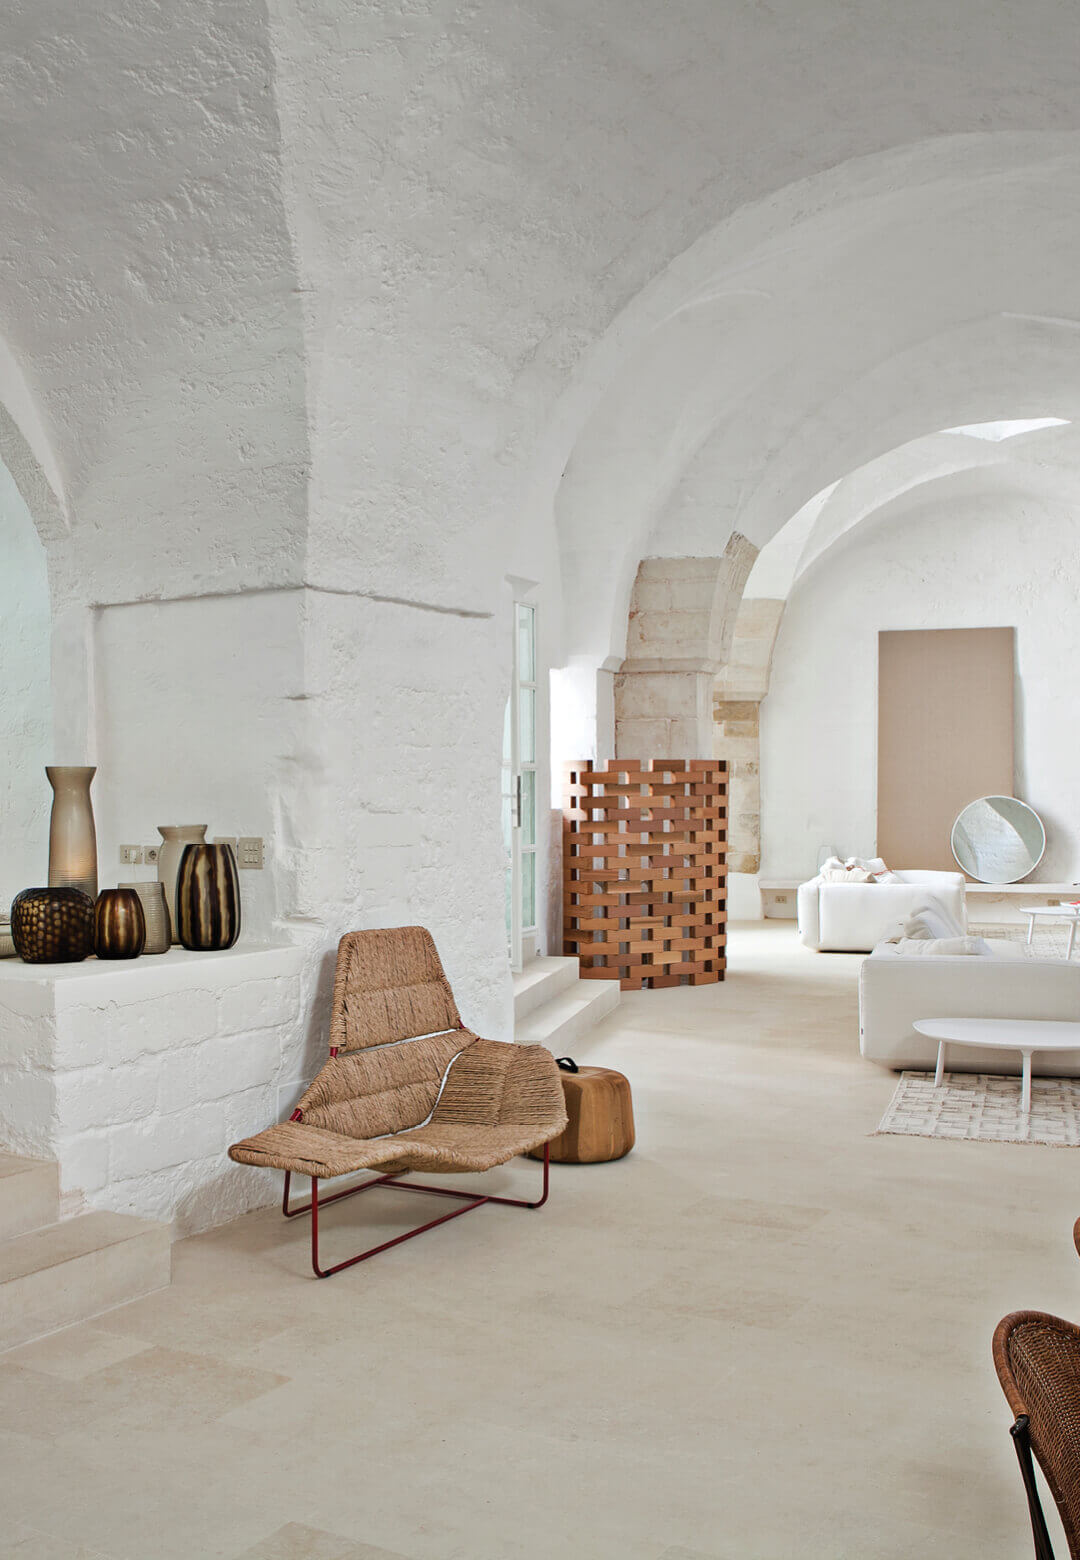 Architects Ludovica Serafini and Roberto Palomba chose a 17th century, former oil mill to turn into their light-filled, relaxing holiday home in the Italian countryside | Sogliano Cavour | Ludovica Serafini and Roberto Palomba | STIRworld